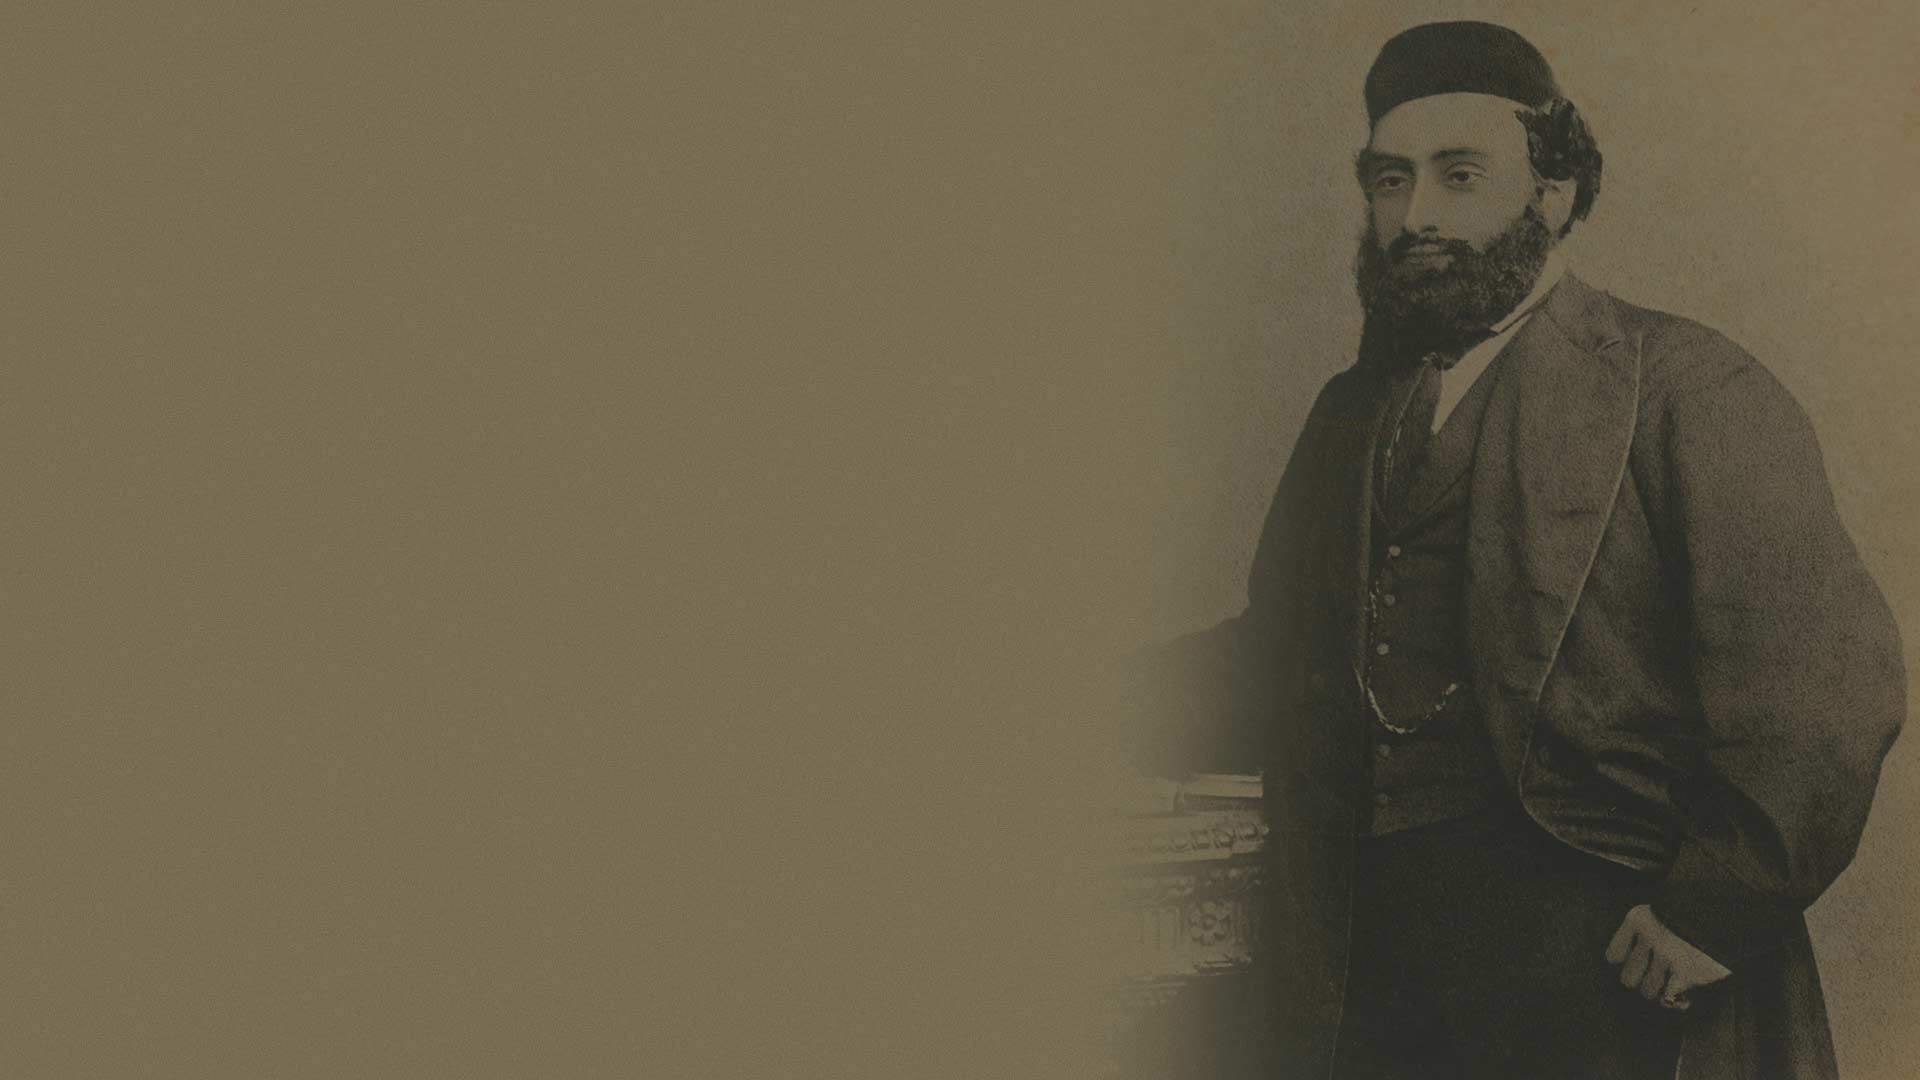 Jamsetji Tata started his first trading firm in 1868